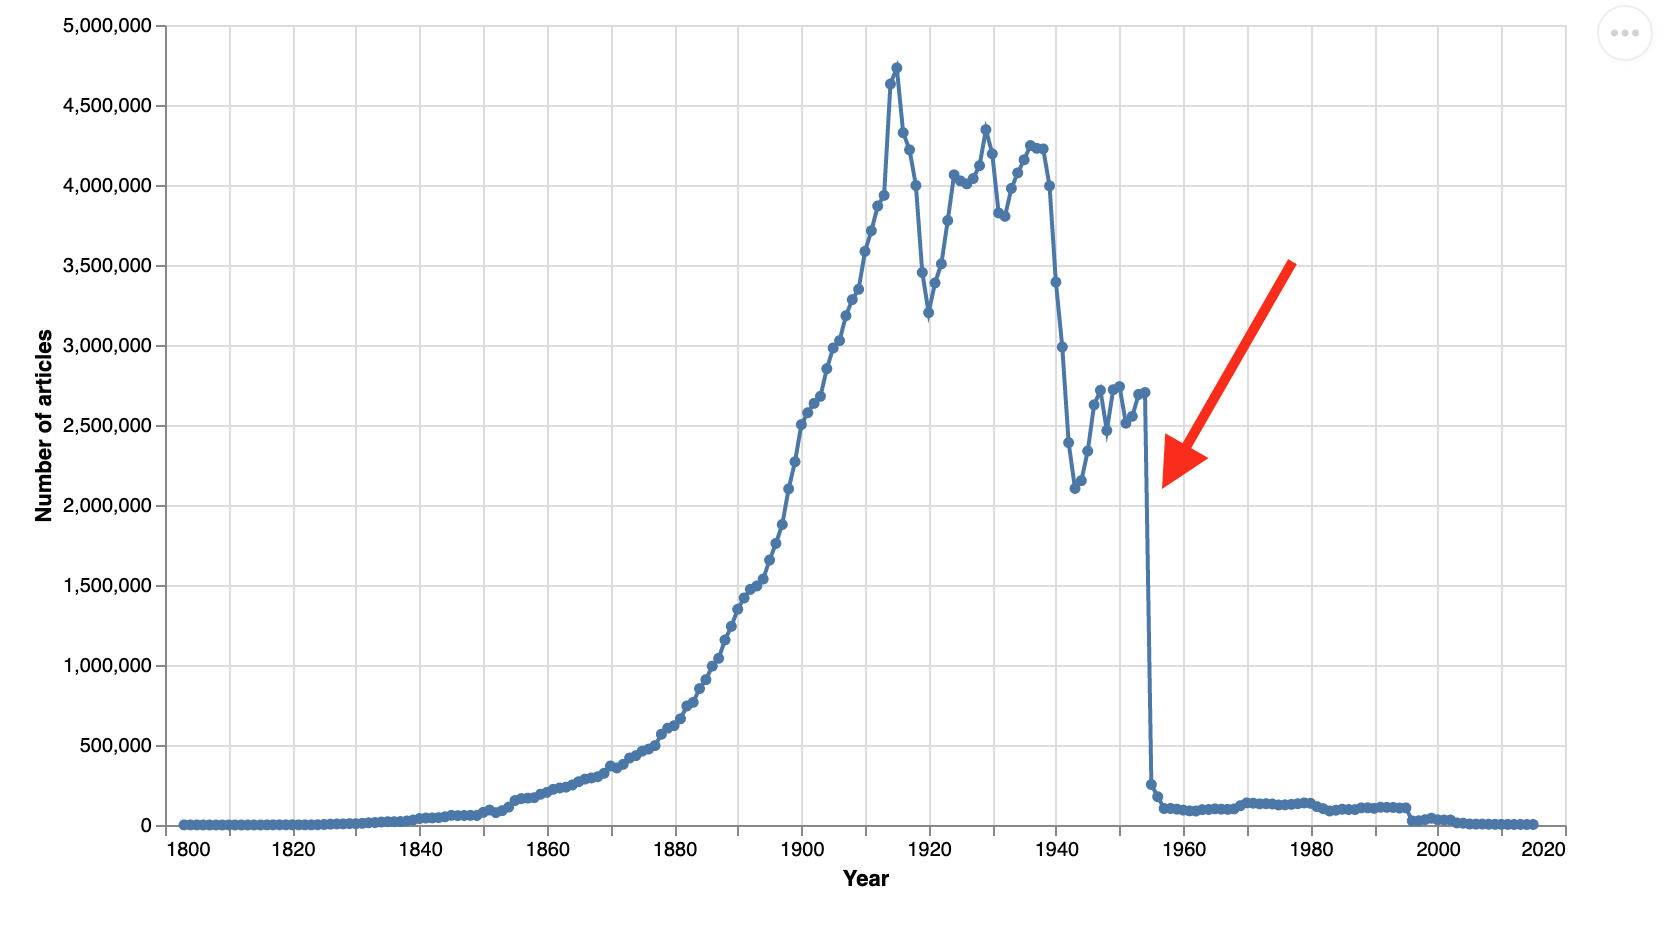 Chart showing number of articles per year in Trove with the dramatic drop off in 1955 highlighted